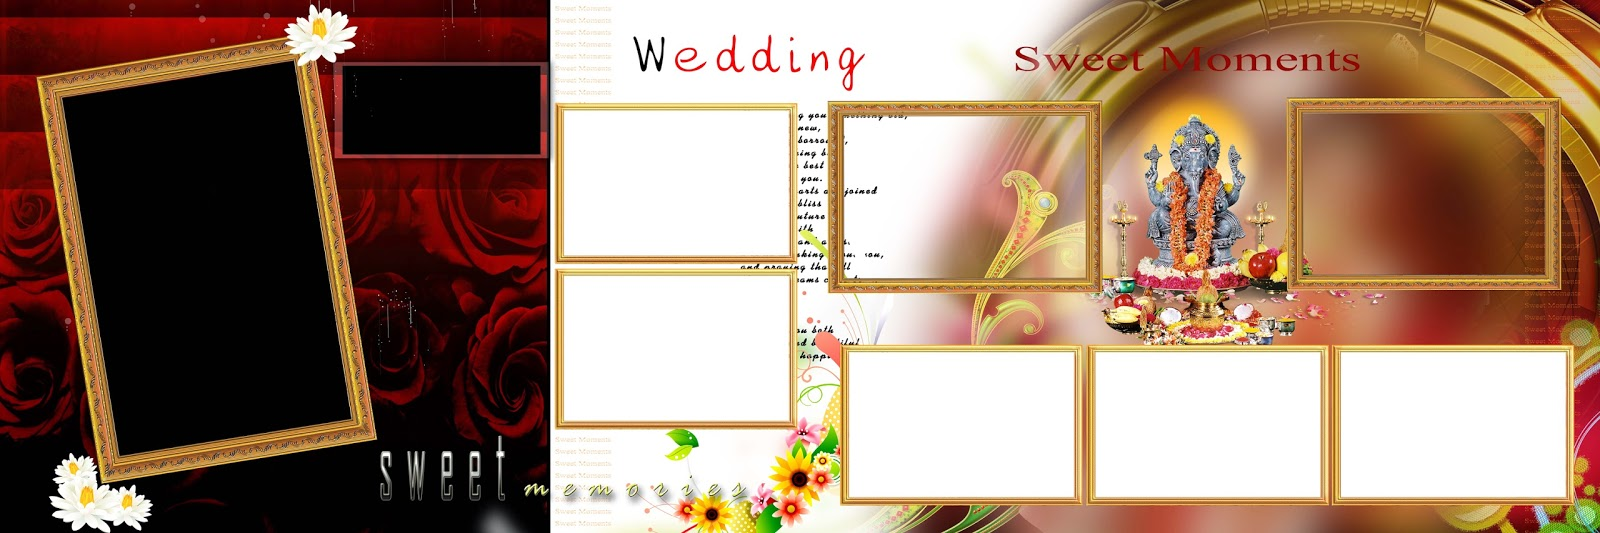 Karizma Background 12x30 | Joy Studio Design Gallery ...